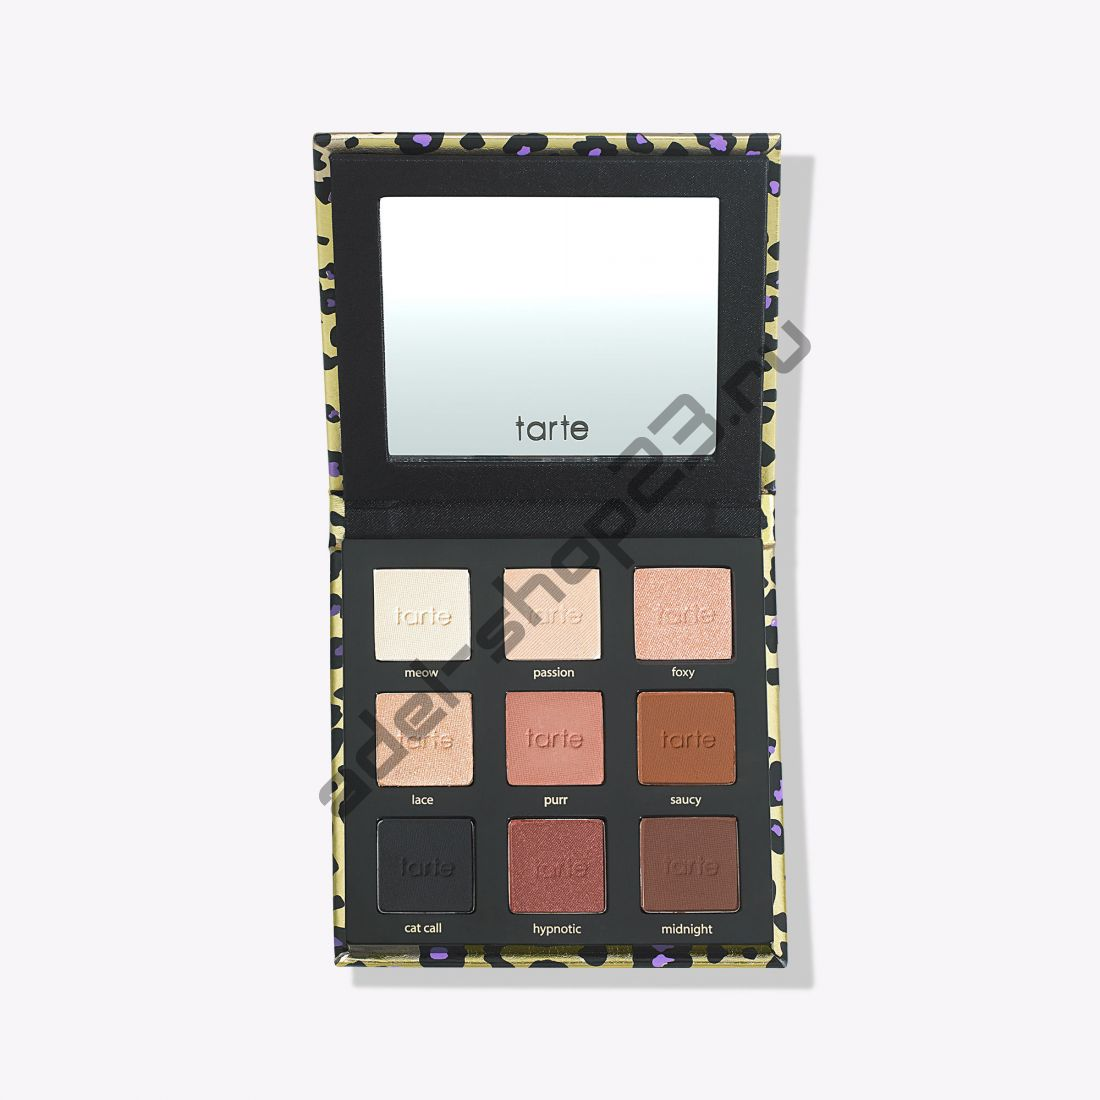 Tarte - maneater eyeshadow palette vol. 2